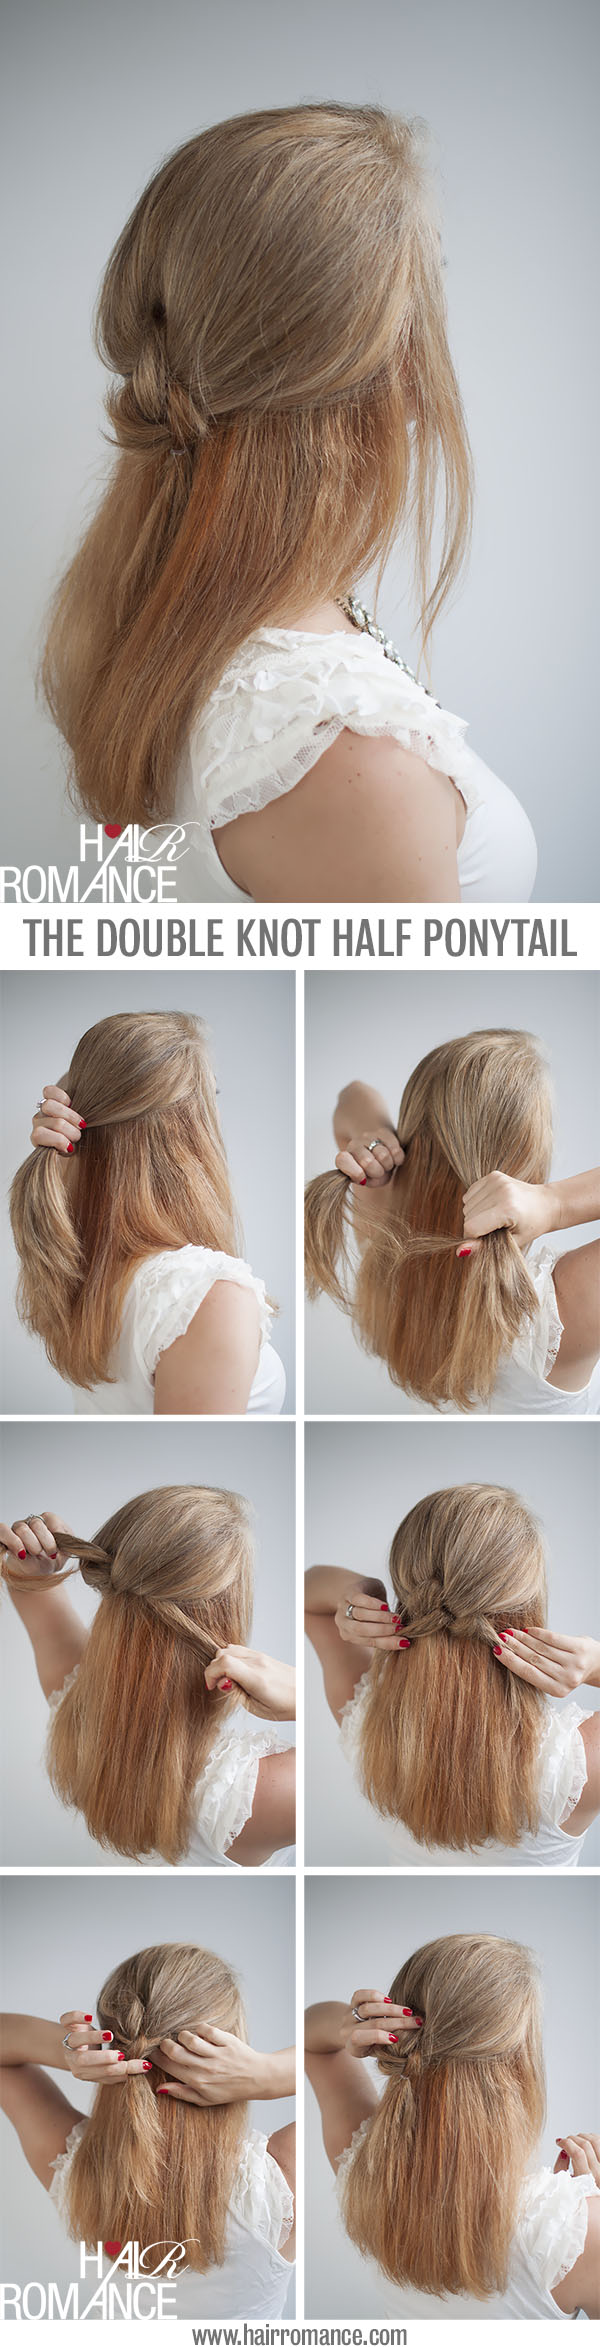 Knot Your Average Half Ponytail Hairstyle Tutorial Hair